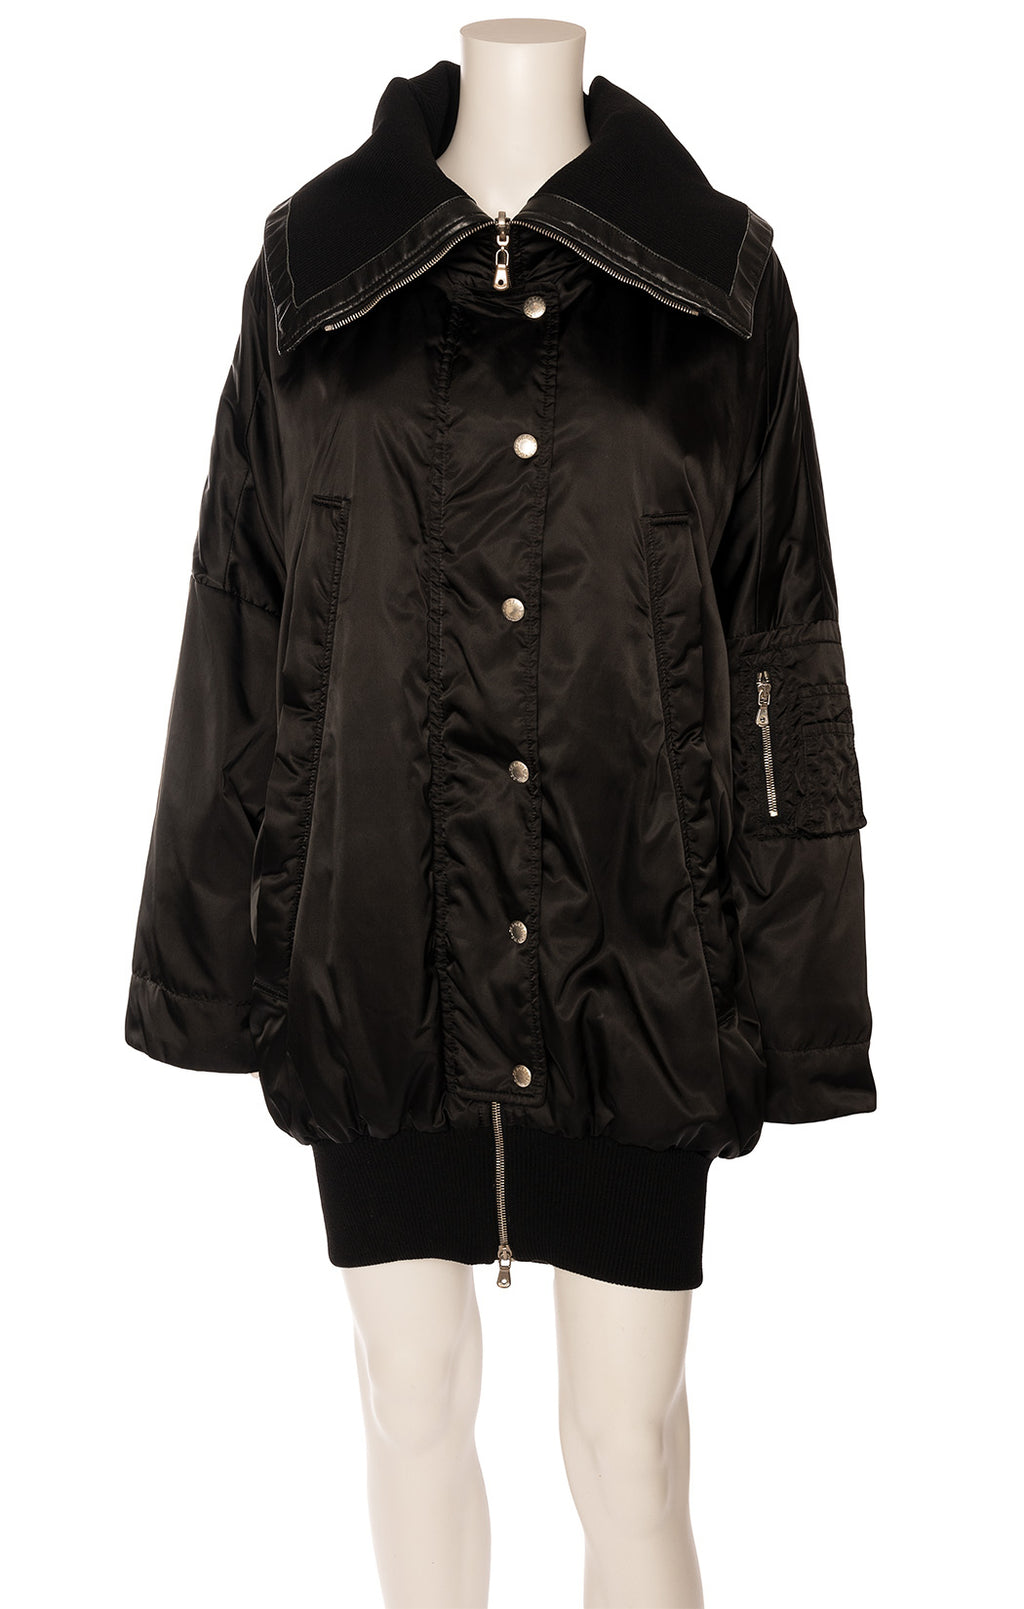 DOLCE AND GABBANA Oversized Jacket Size: Small